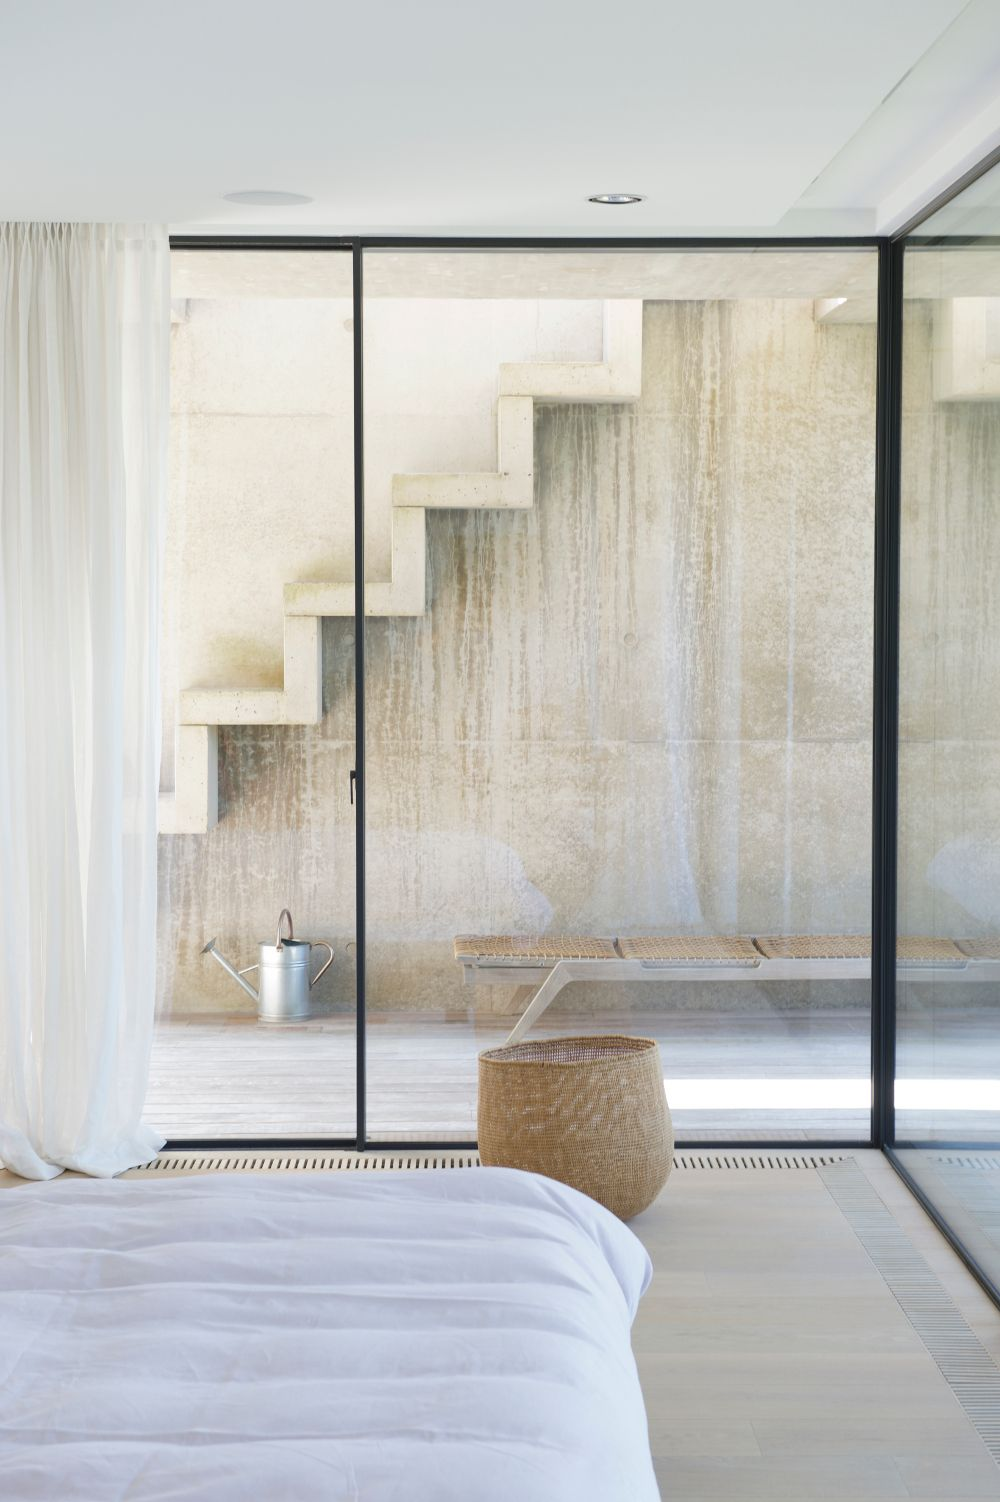 Frameless glass wall details - The Frameless Energy Efficient Sliding And Fixed Window System Minimal Windows From